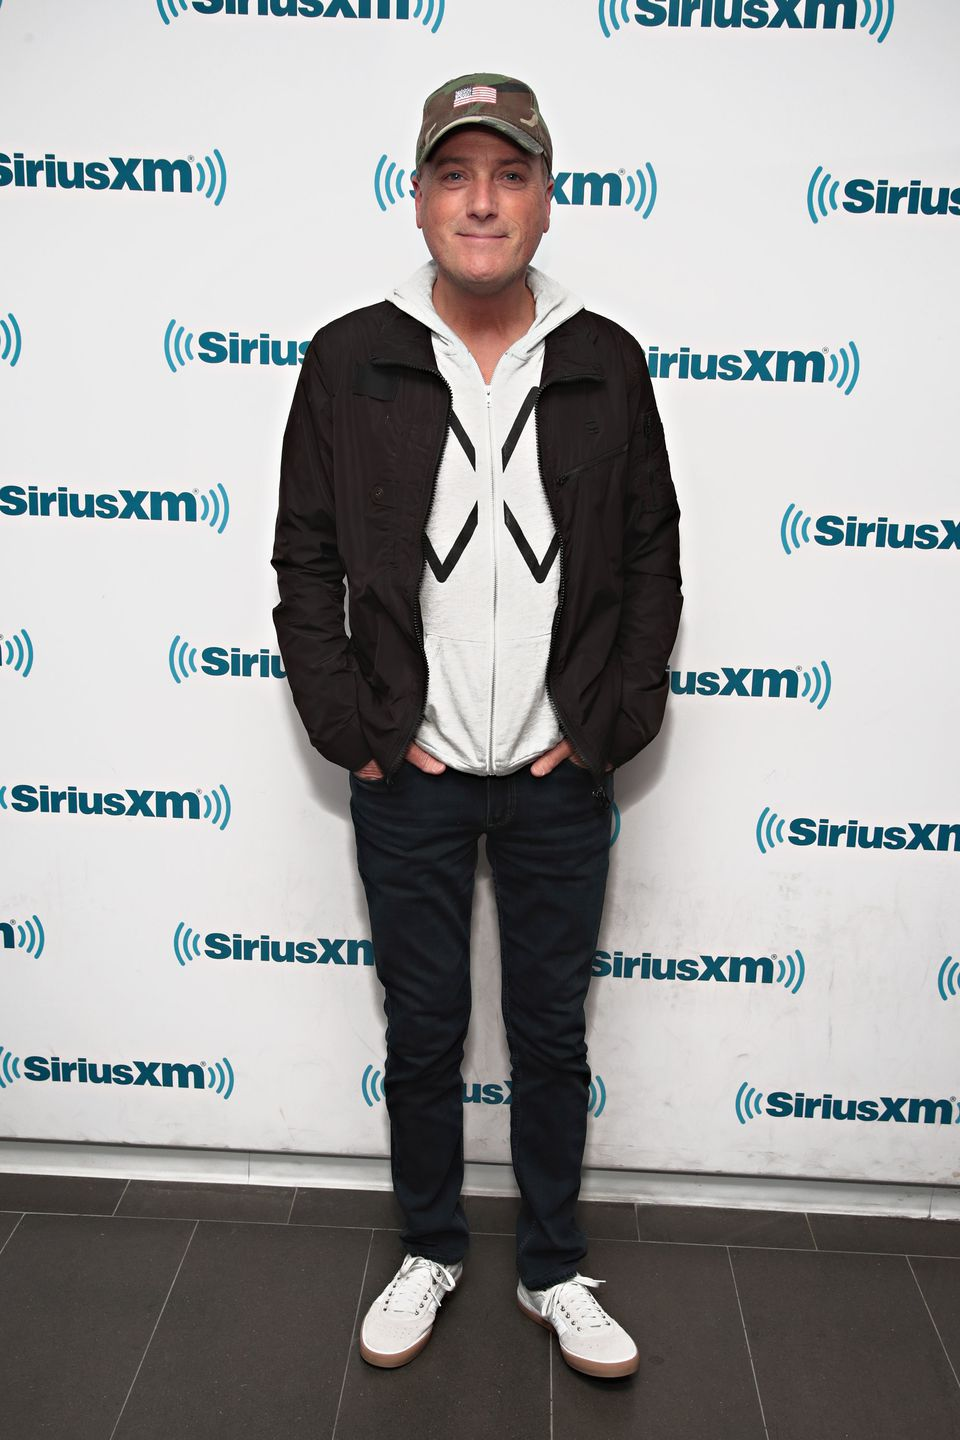 Michael W. Smith visits SIriusXM